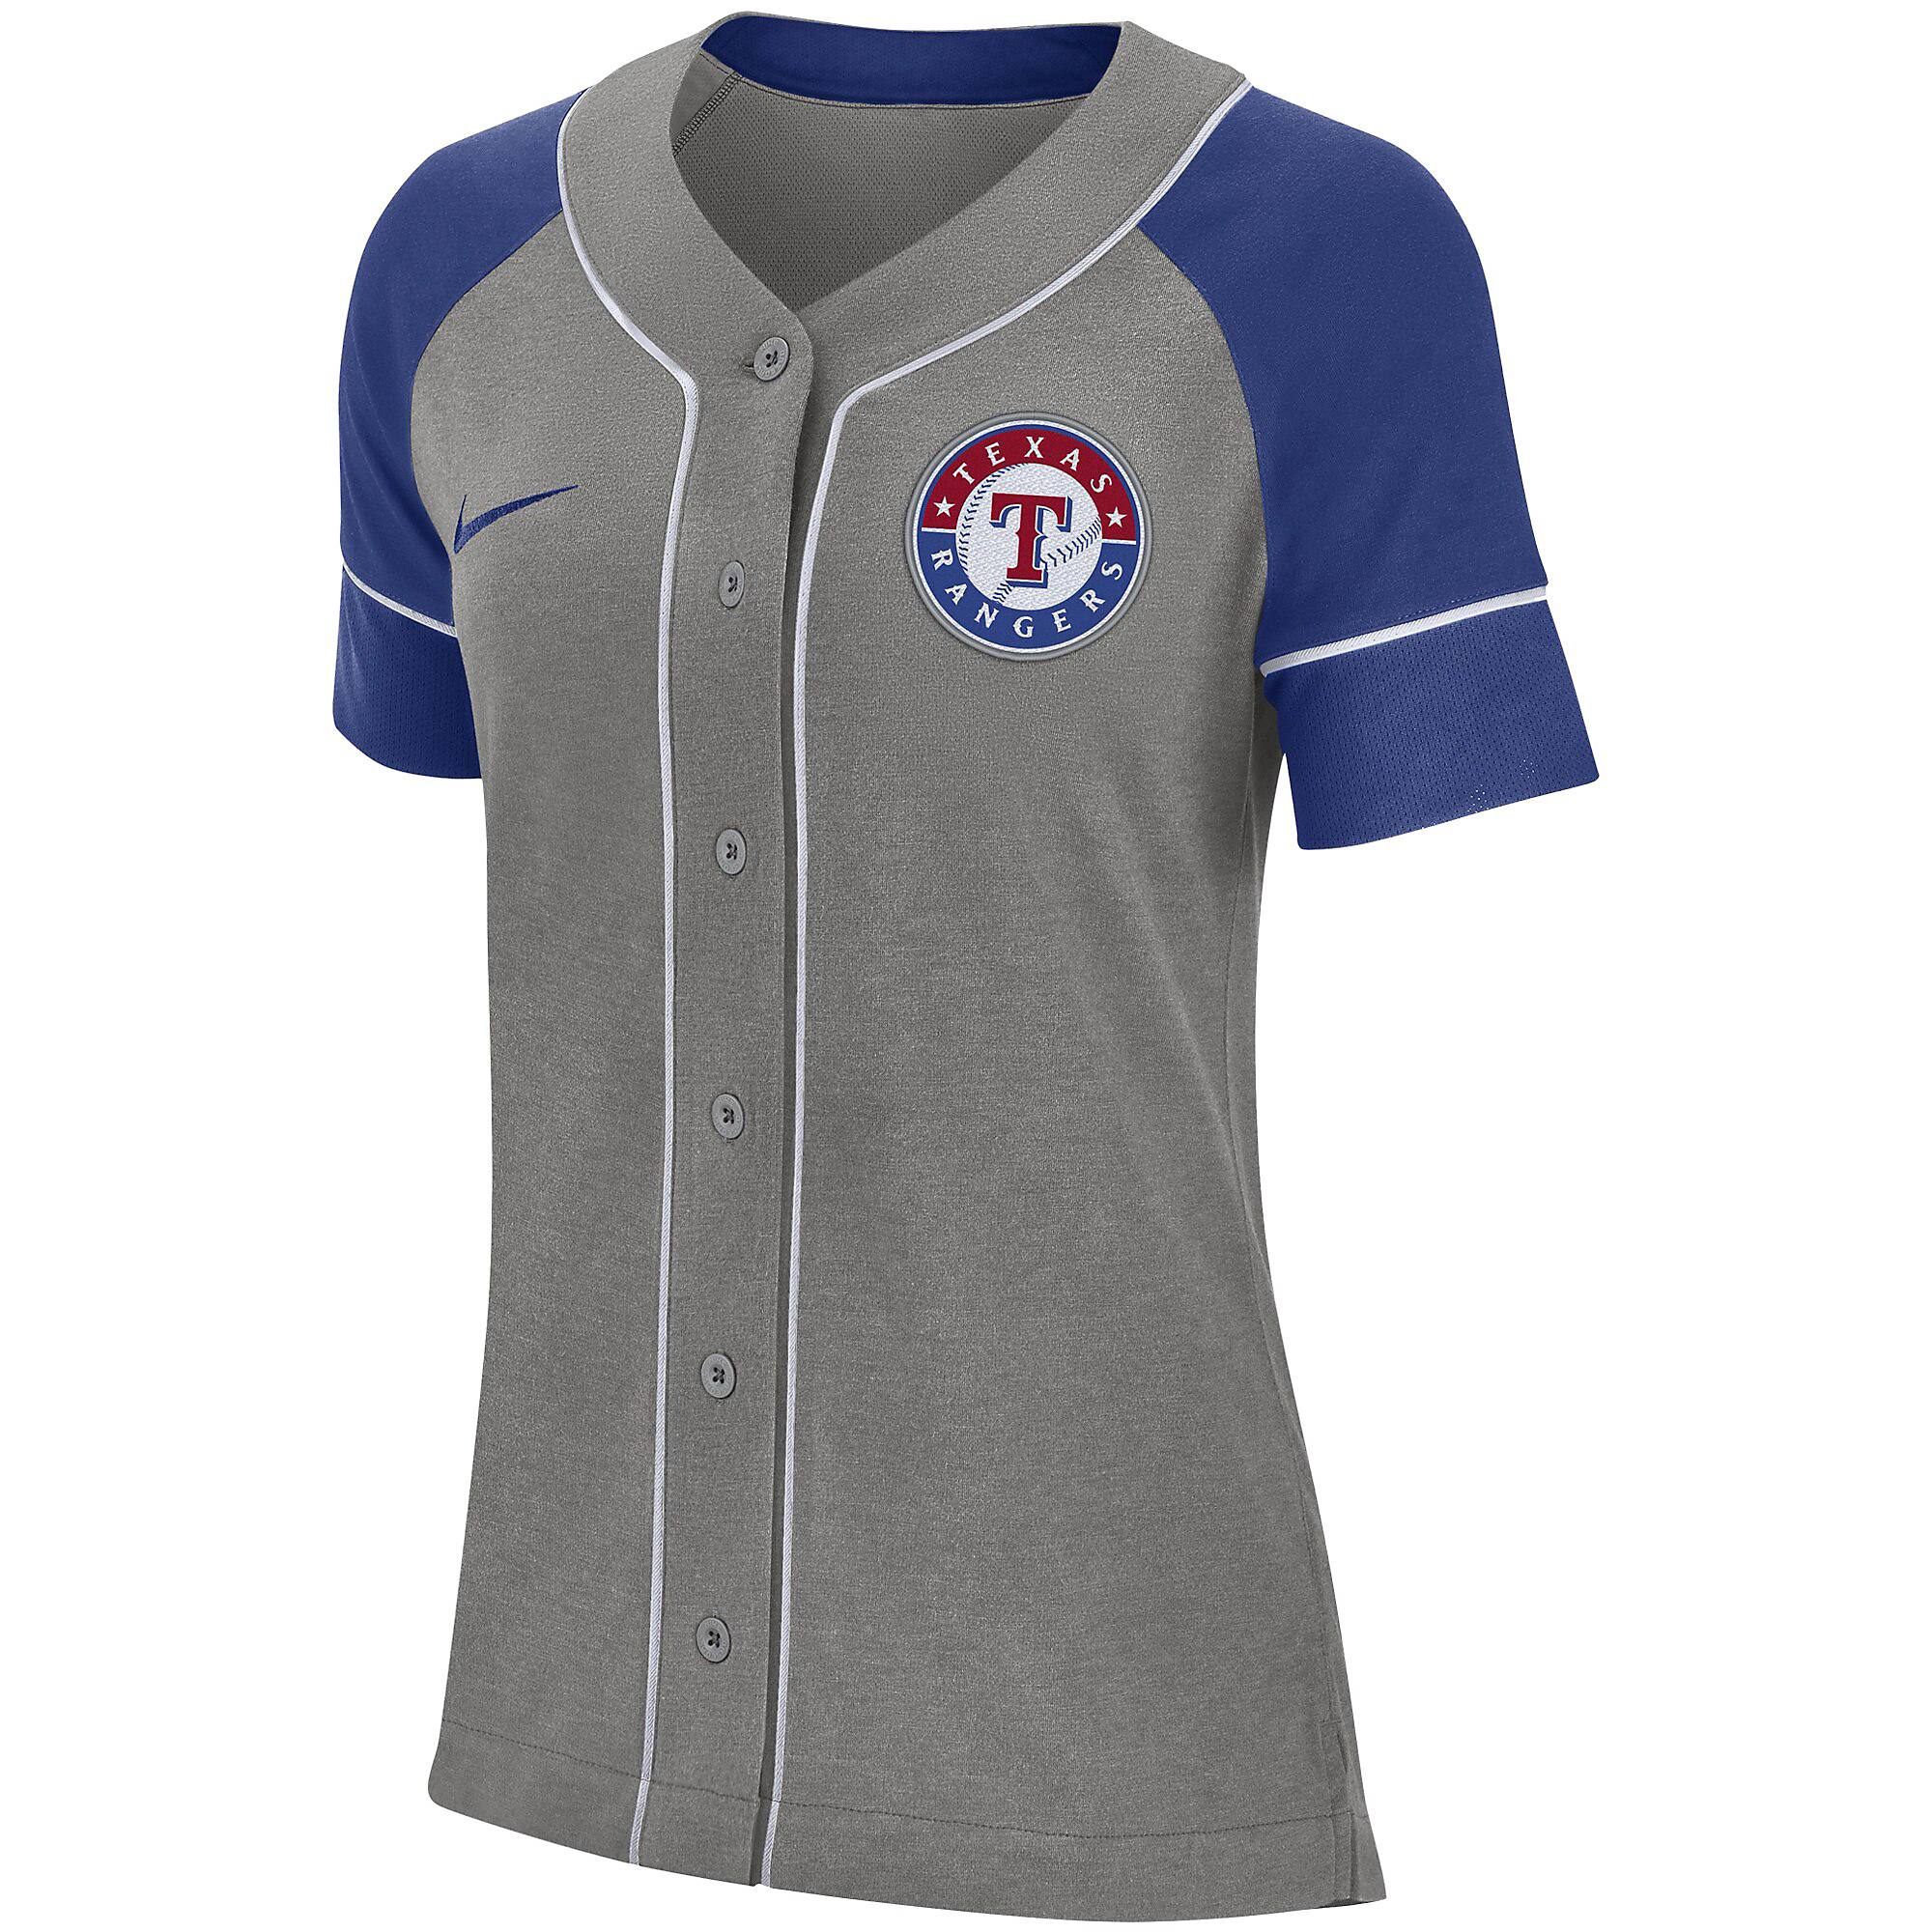 Texas Rangers Womens Nike Dry Jersey Top